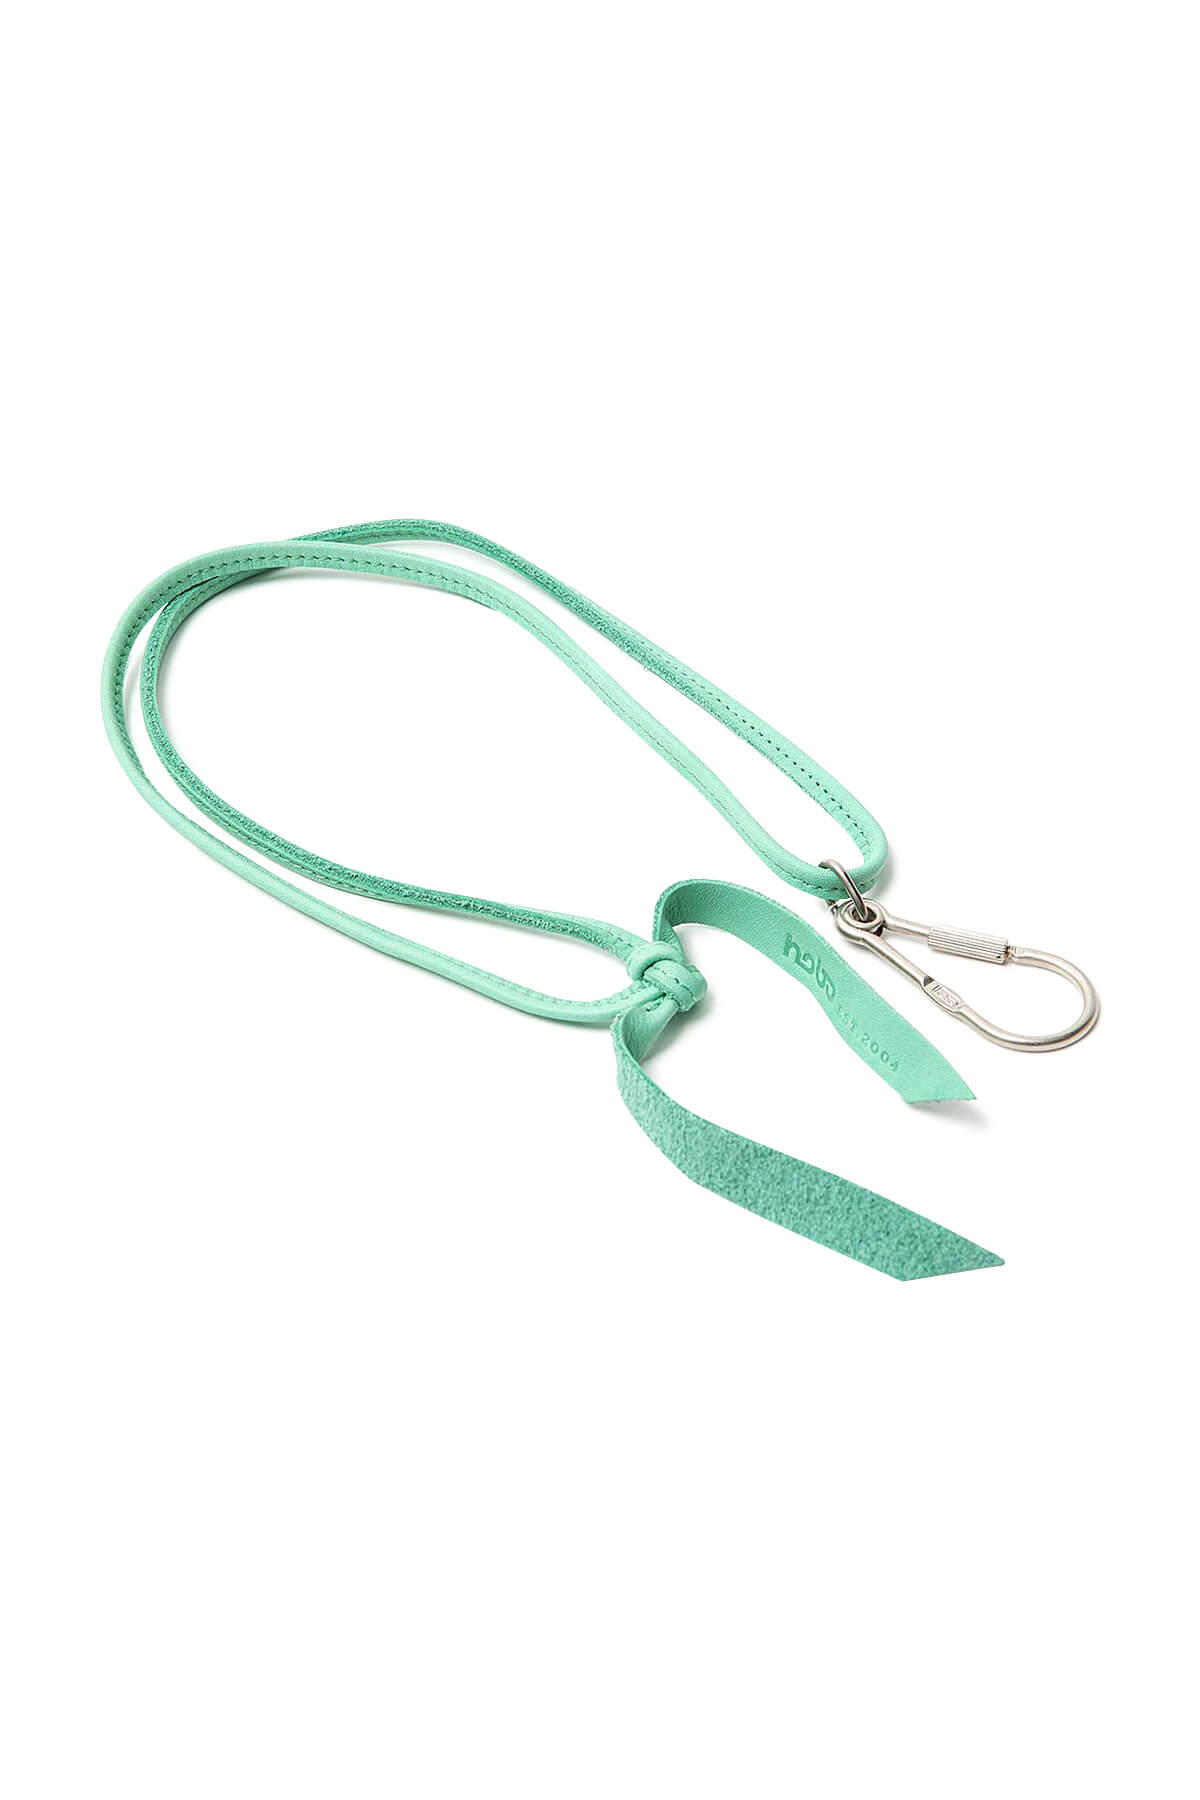 HOBO / COW LEATHER CORD KEY RING (MINT)イメージ